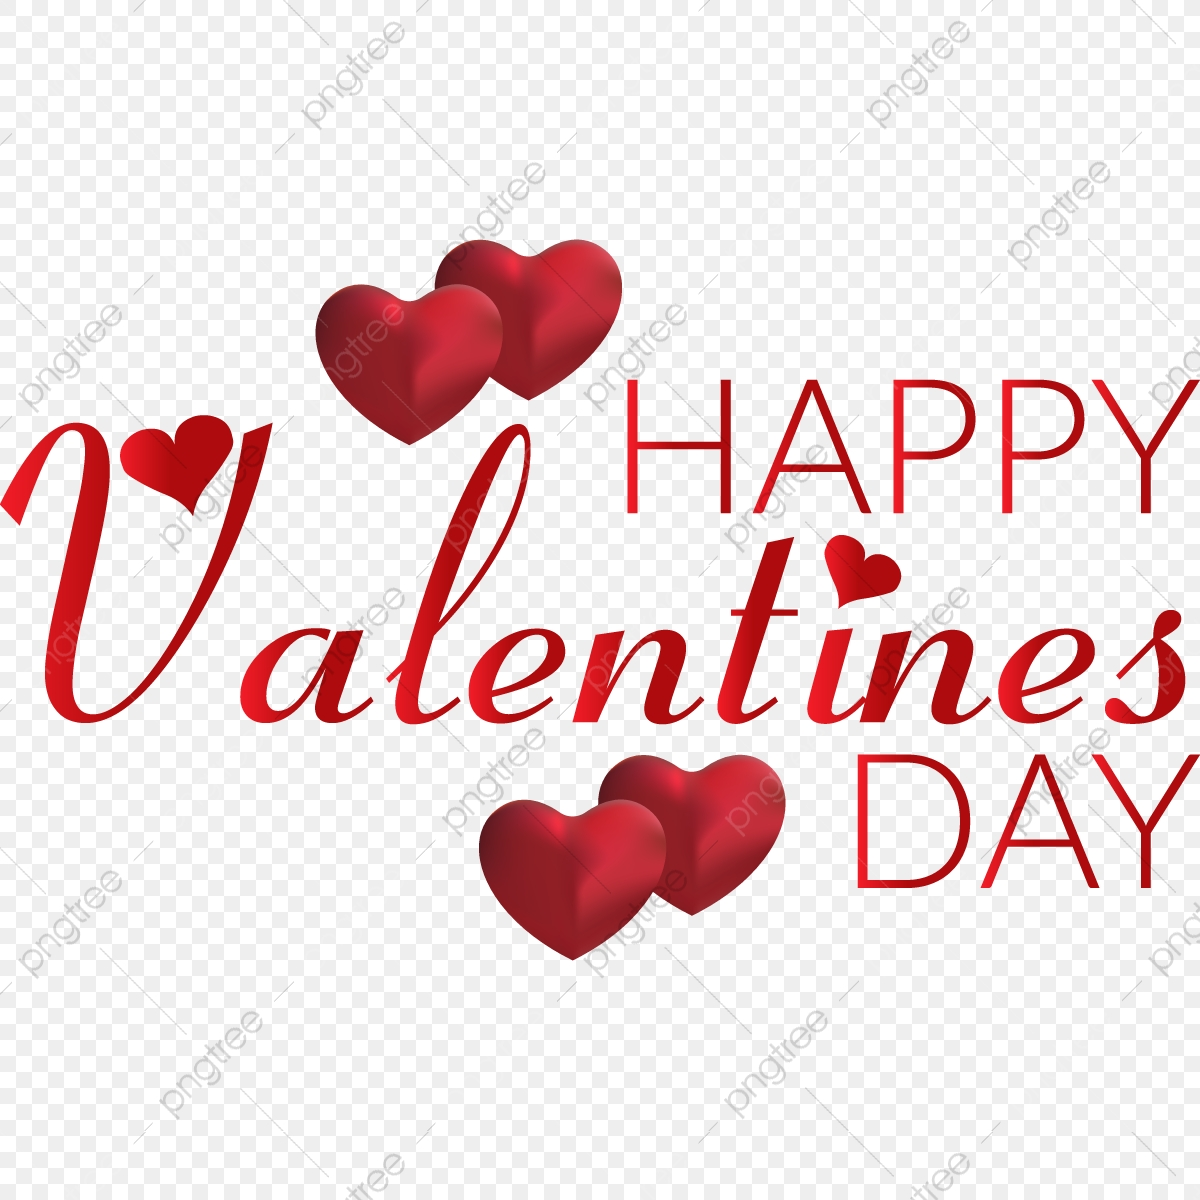 Happy Valentine Day Typography With Hearts Vector Valentine Fancy Valentines Png And Vector With Transparent Background For Free Download